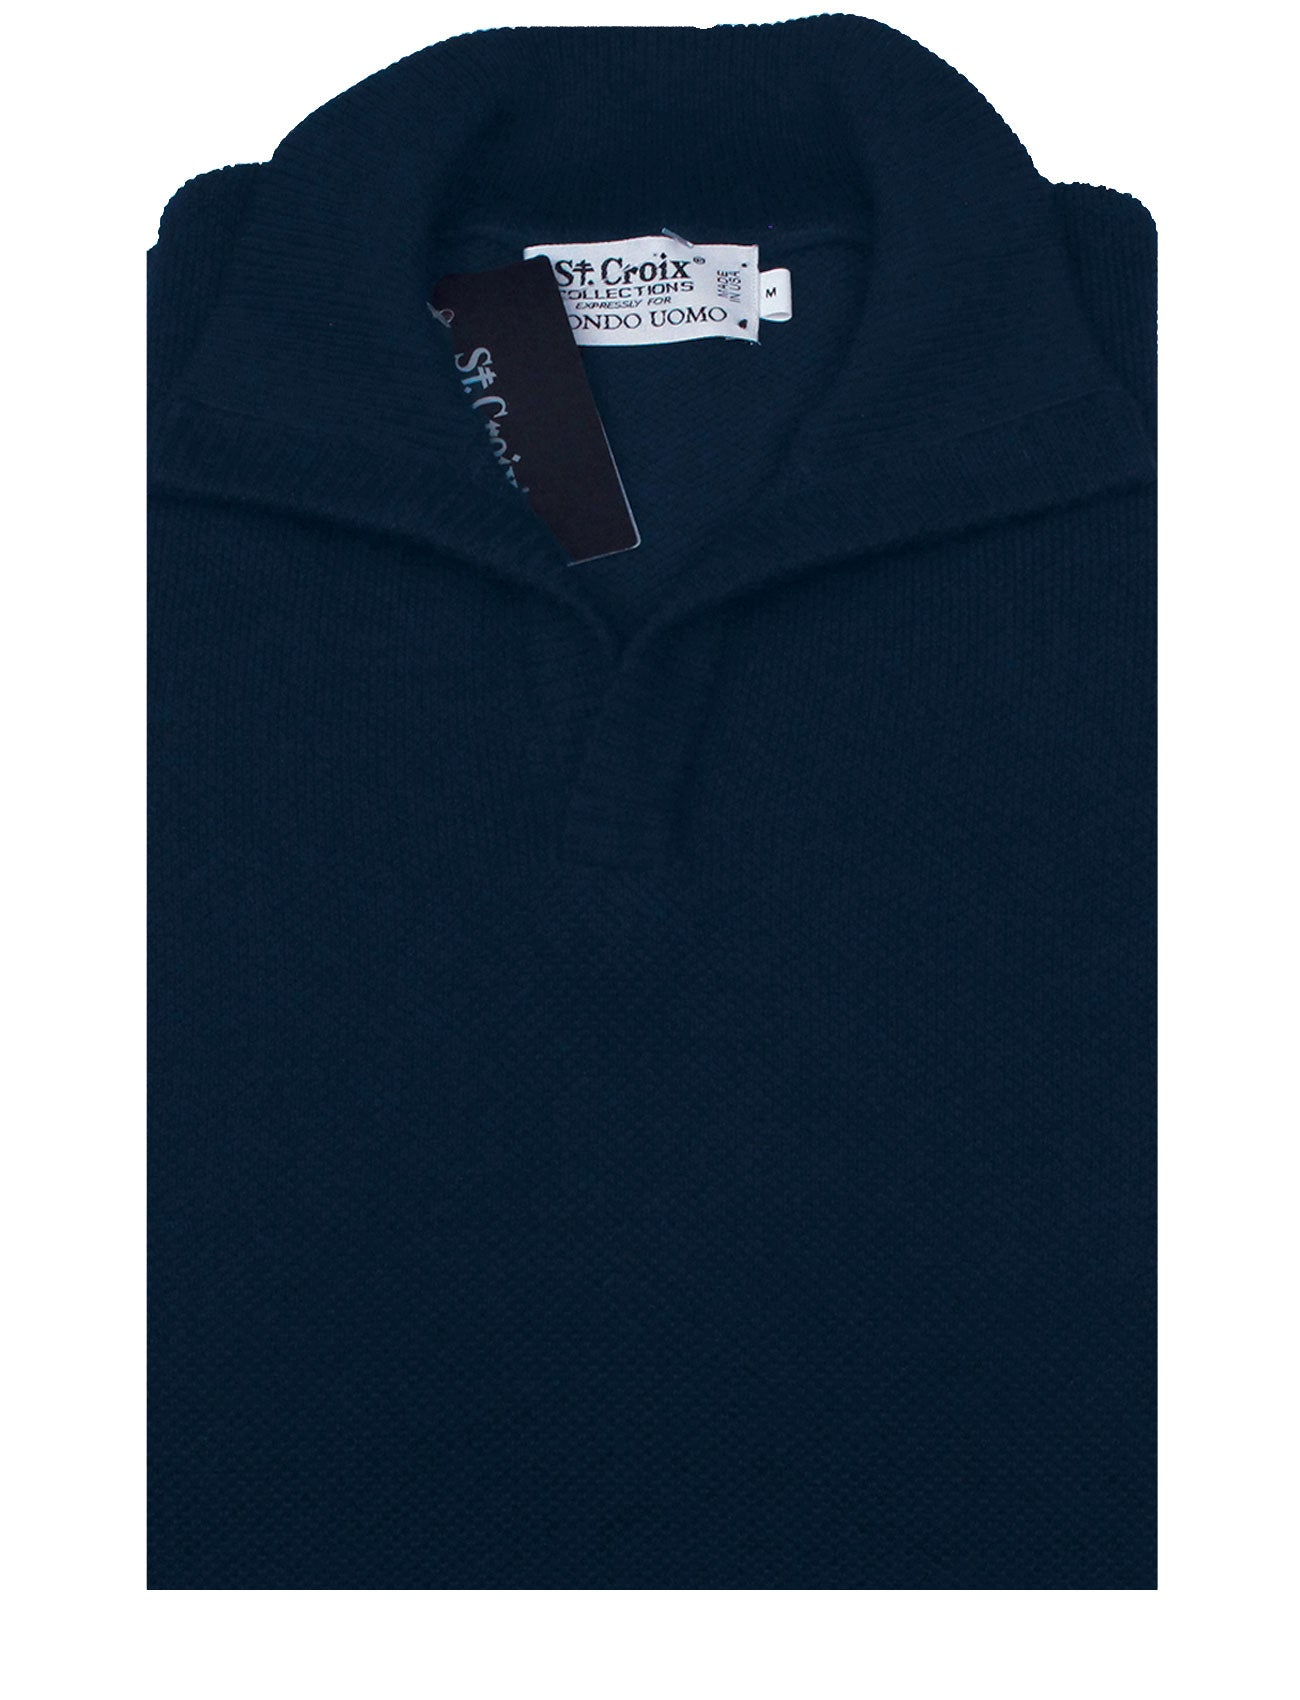 St Croix Sweater Open Mock Neck Navy